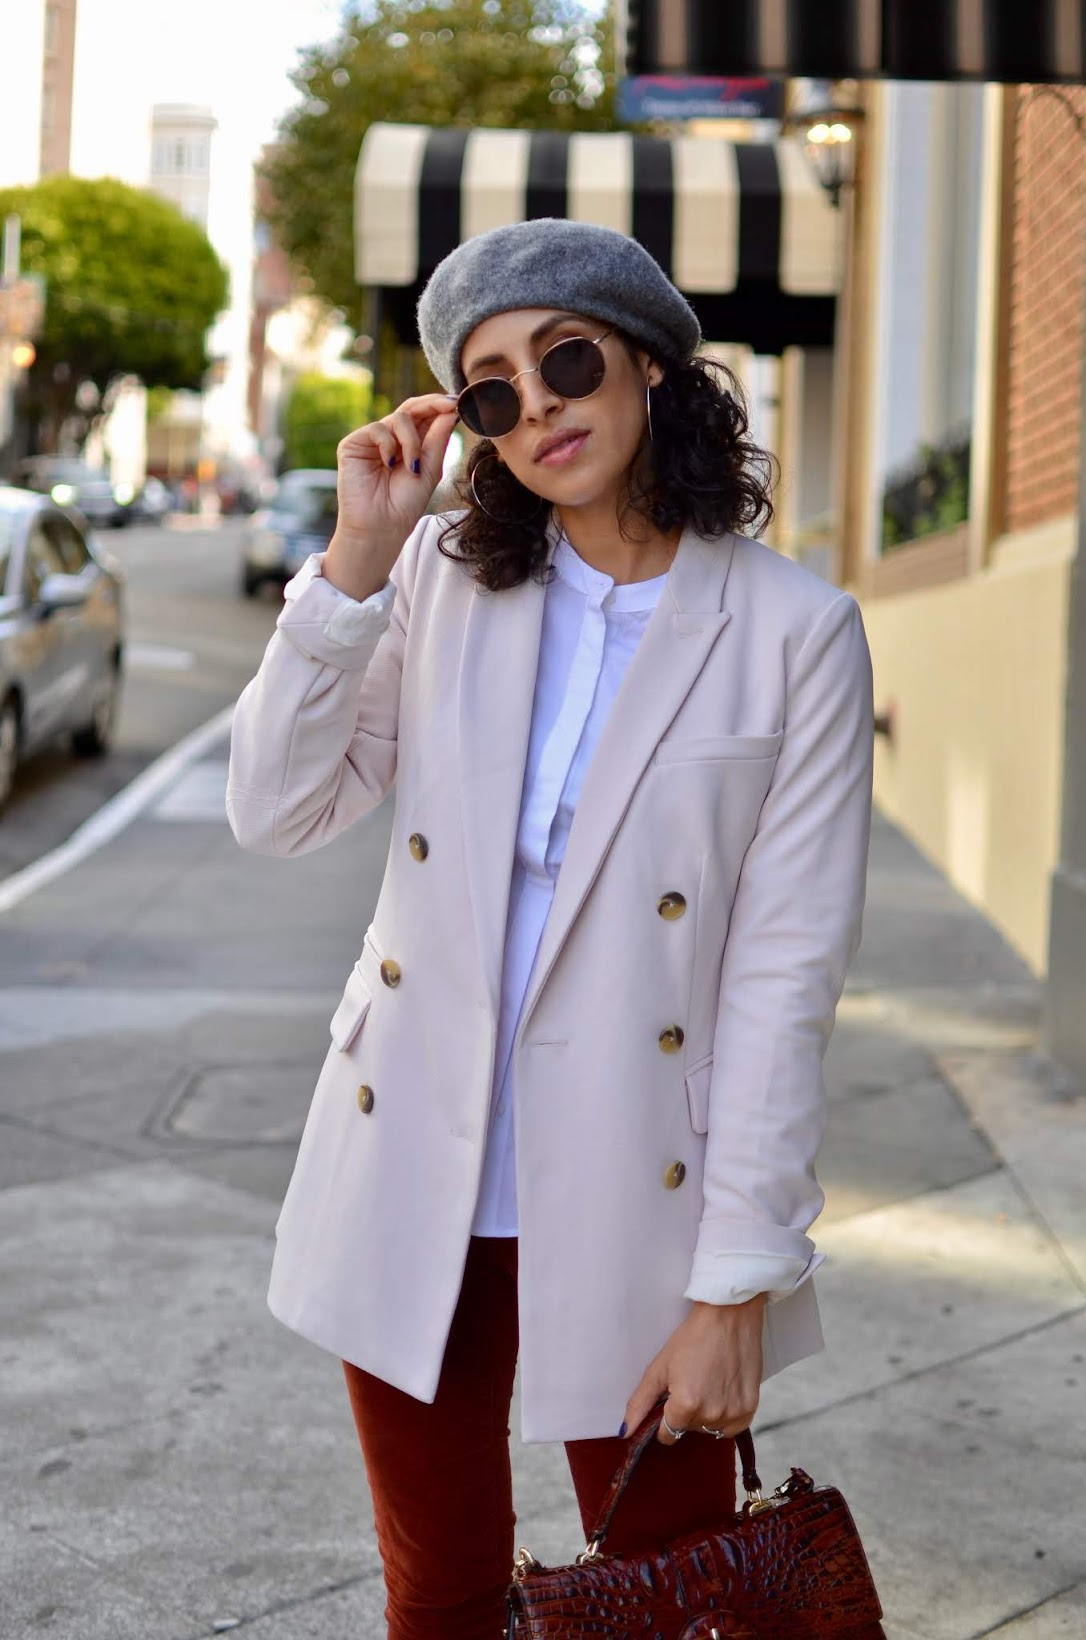 Le Marais croissanterie, pastry shop in SF, chic street style, anine bing boots, cords, fall style, beret